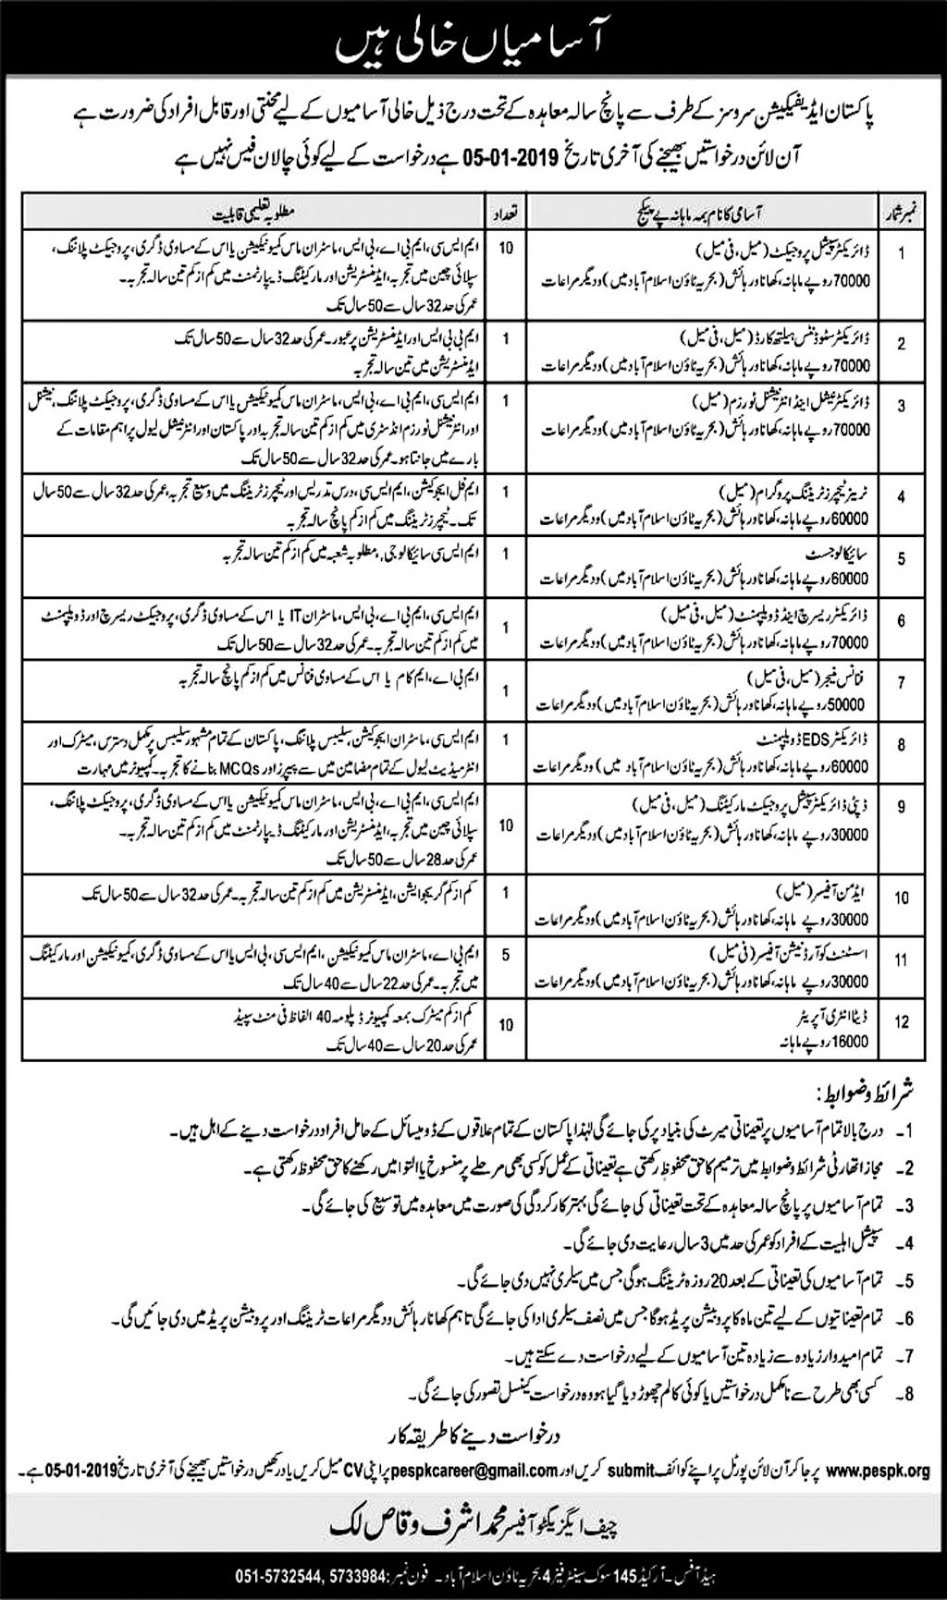 Pakistan Edification Services PES Jobs 2019  jobs in pakistan,pakistan edification services jobs,pakistan jobs,pakistan edification services pes jobs 2019 online form,latest jobs in pakistan,jobs in pakistan 2018,pakistan army jobs 2018,pakistan edification services,pakistan army jobs,ppsc jobs,pakistan,govt jobs,pakistan agriculture research council (parc) jobs 2019,govt jobs pakistan,jobs in pakistan 2019,latest jobs,edification services